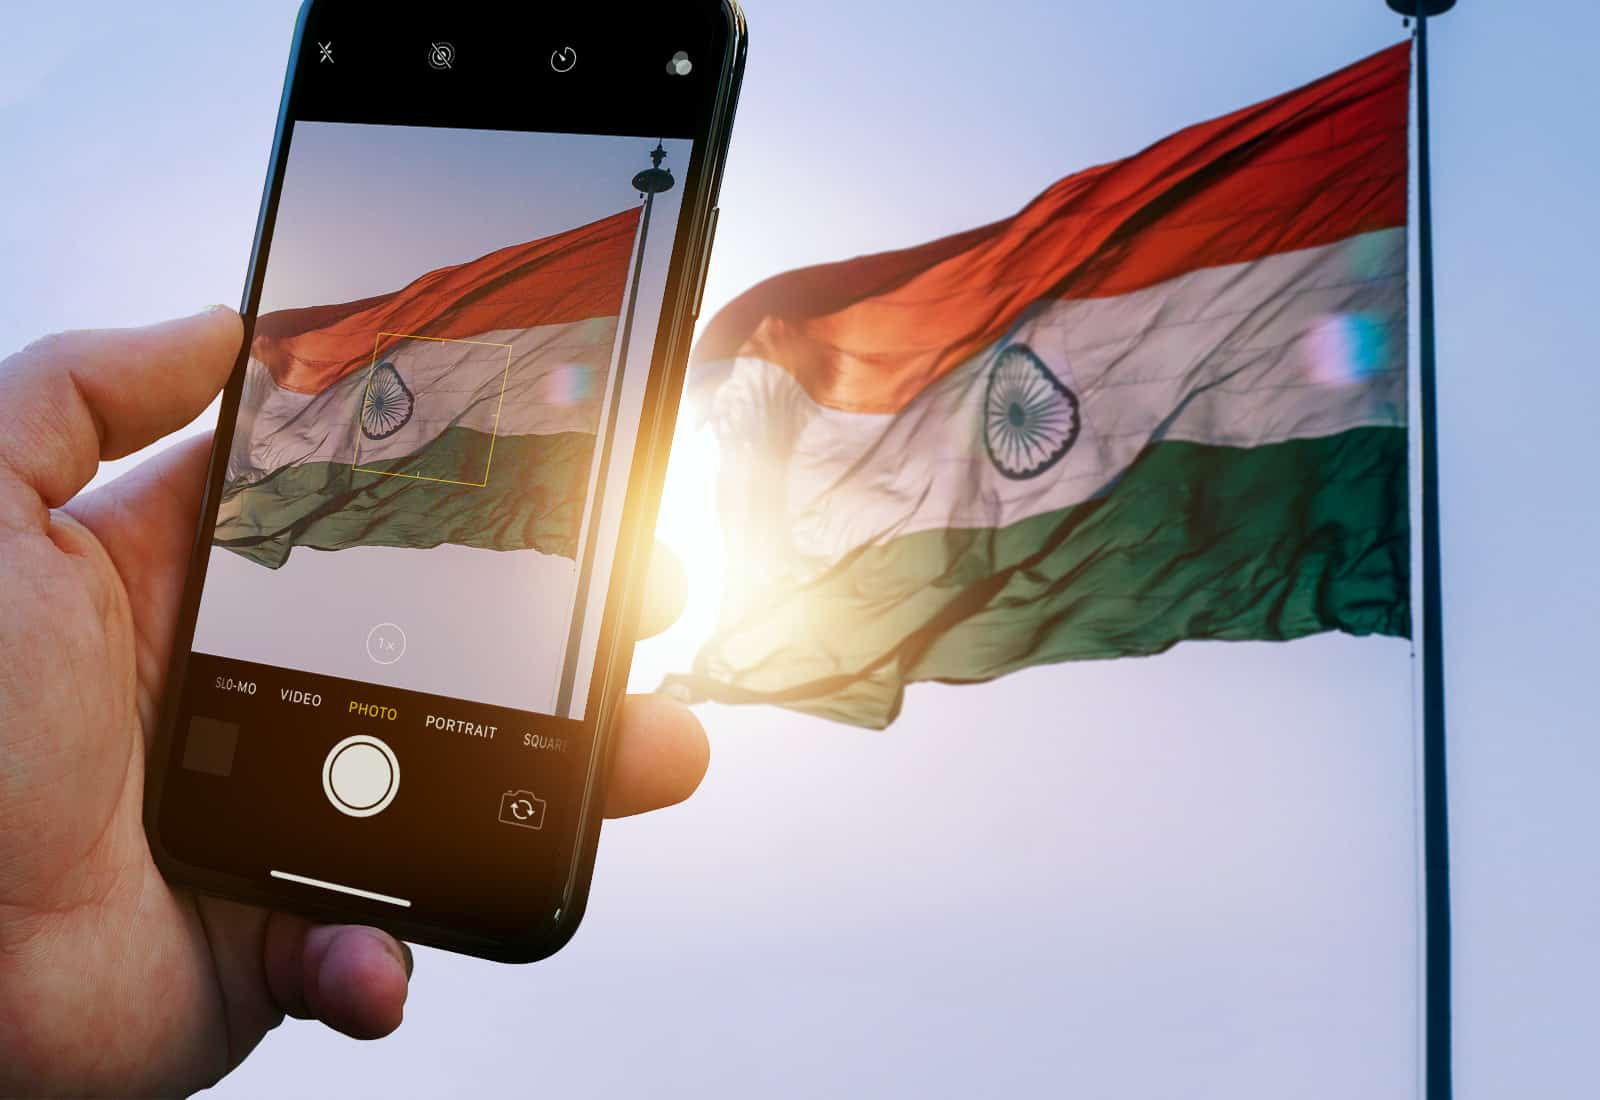 India may offer subsidized loans as an incentive to win Apple manufacturing